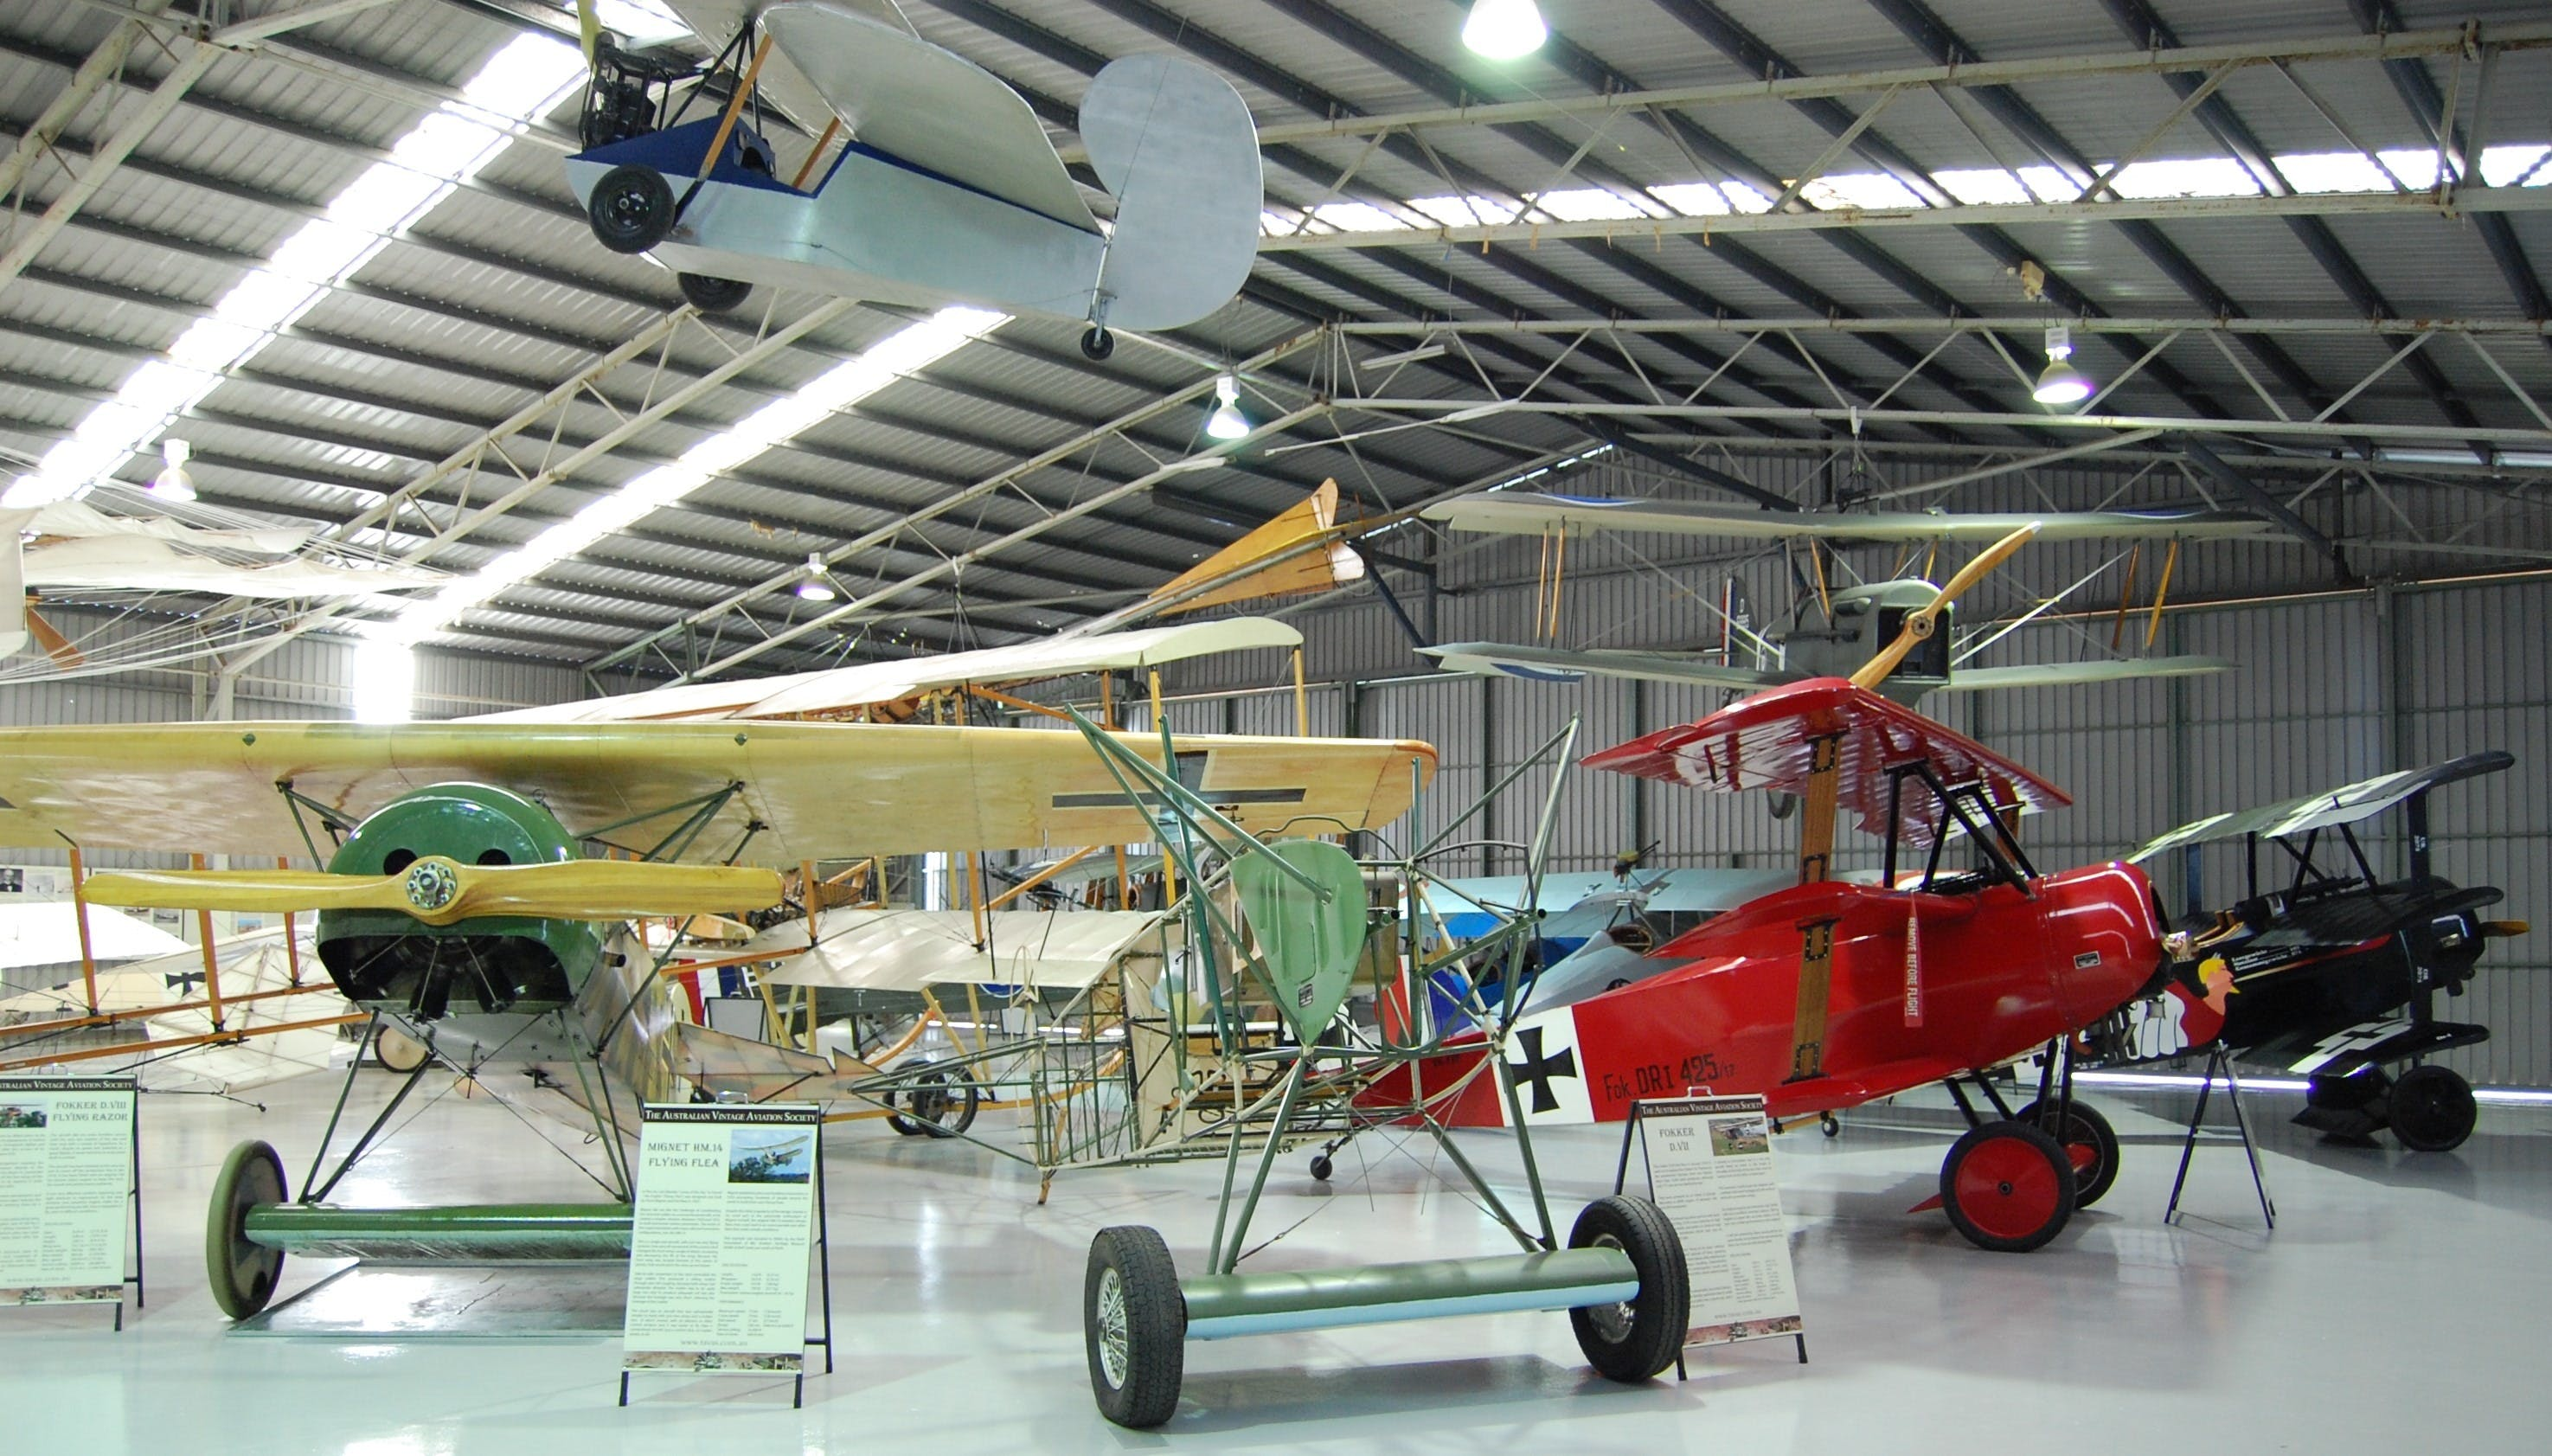 The Australian Vintage Aviation Society Museum - Wagga Wagga Accommodation